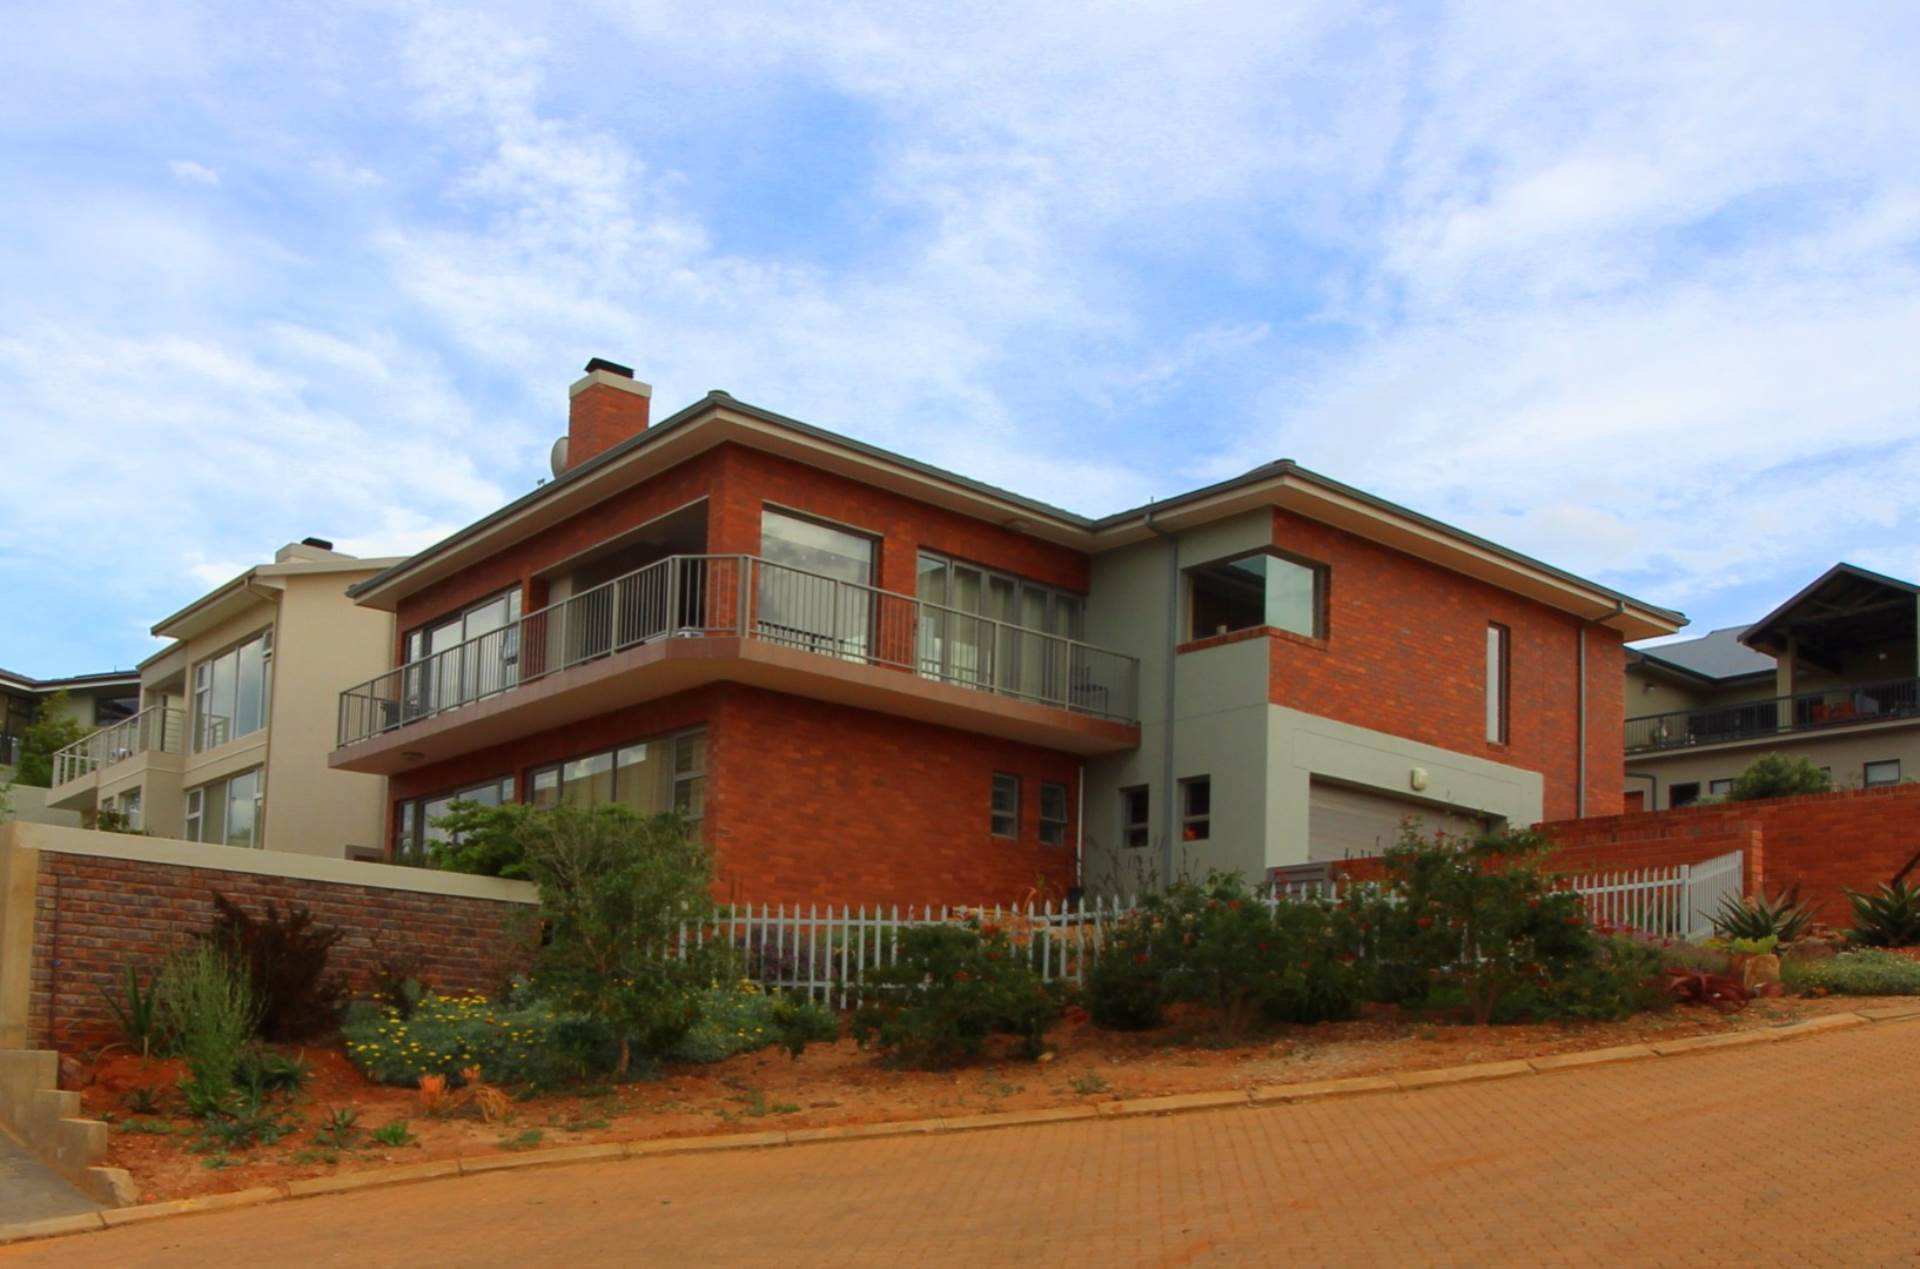 4 BedroomHouse For Sale In Monte Christo